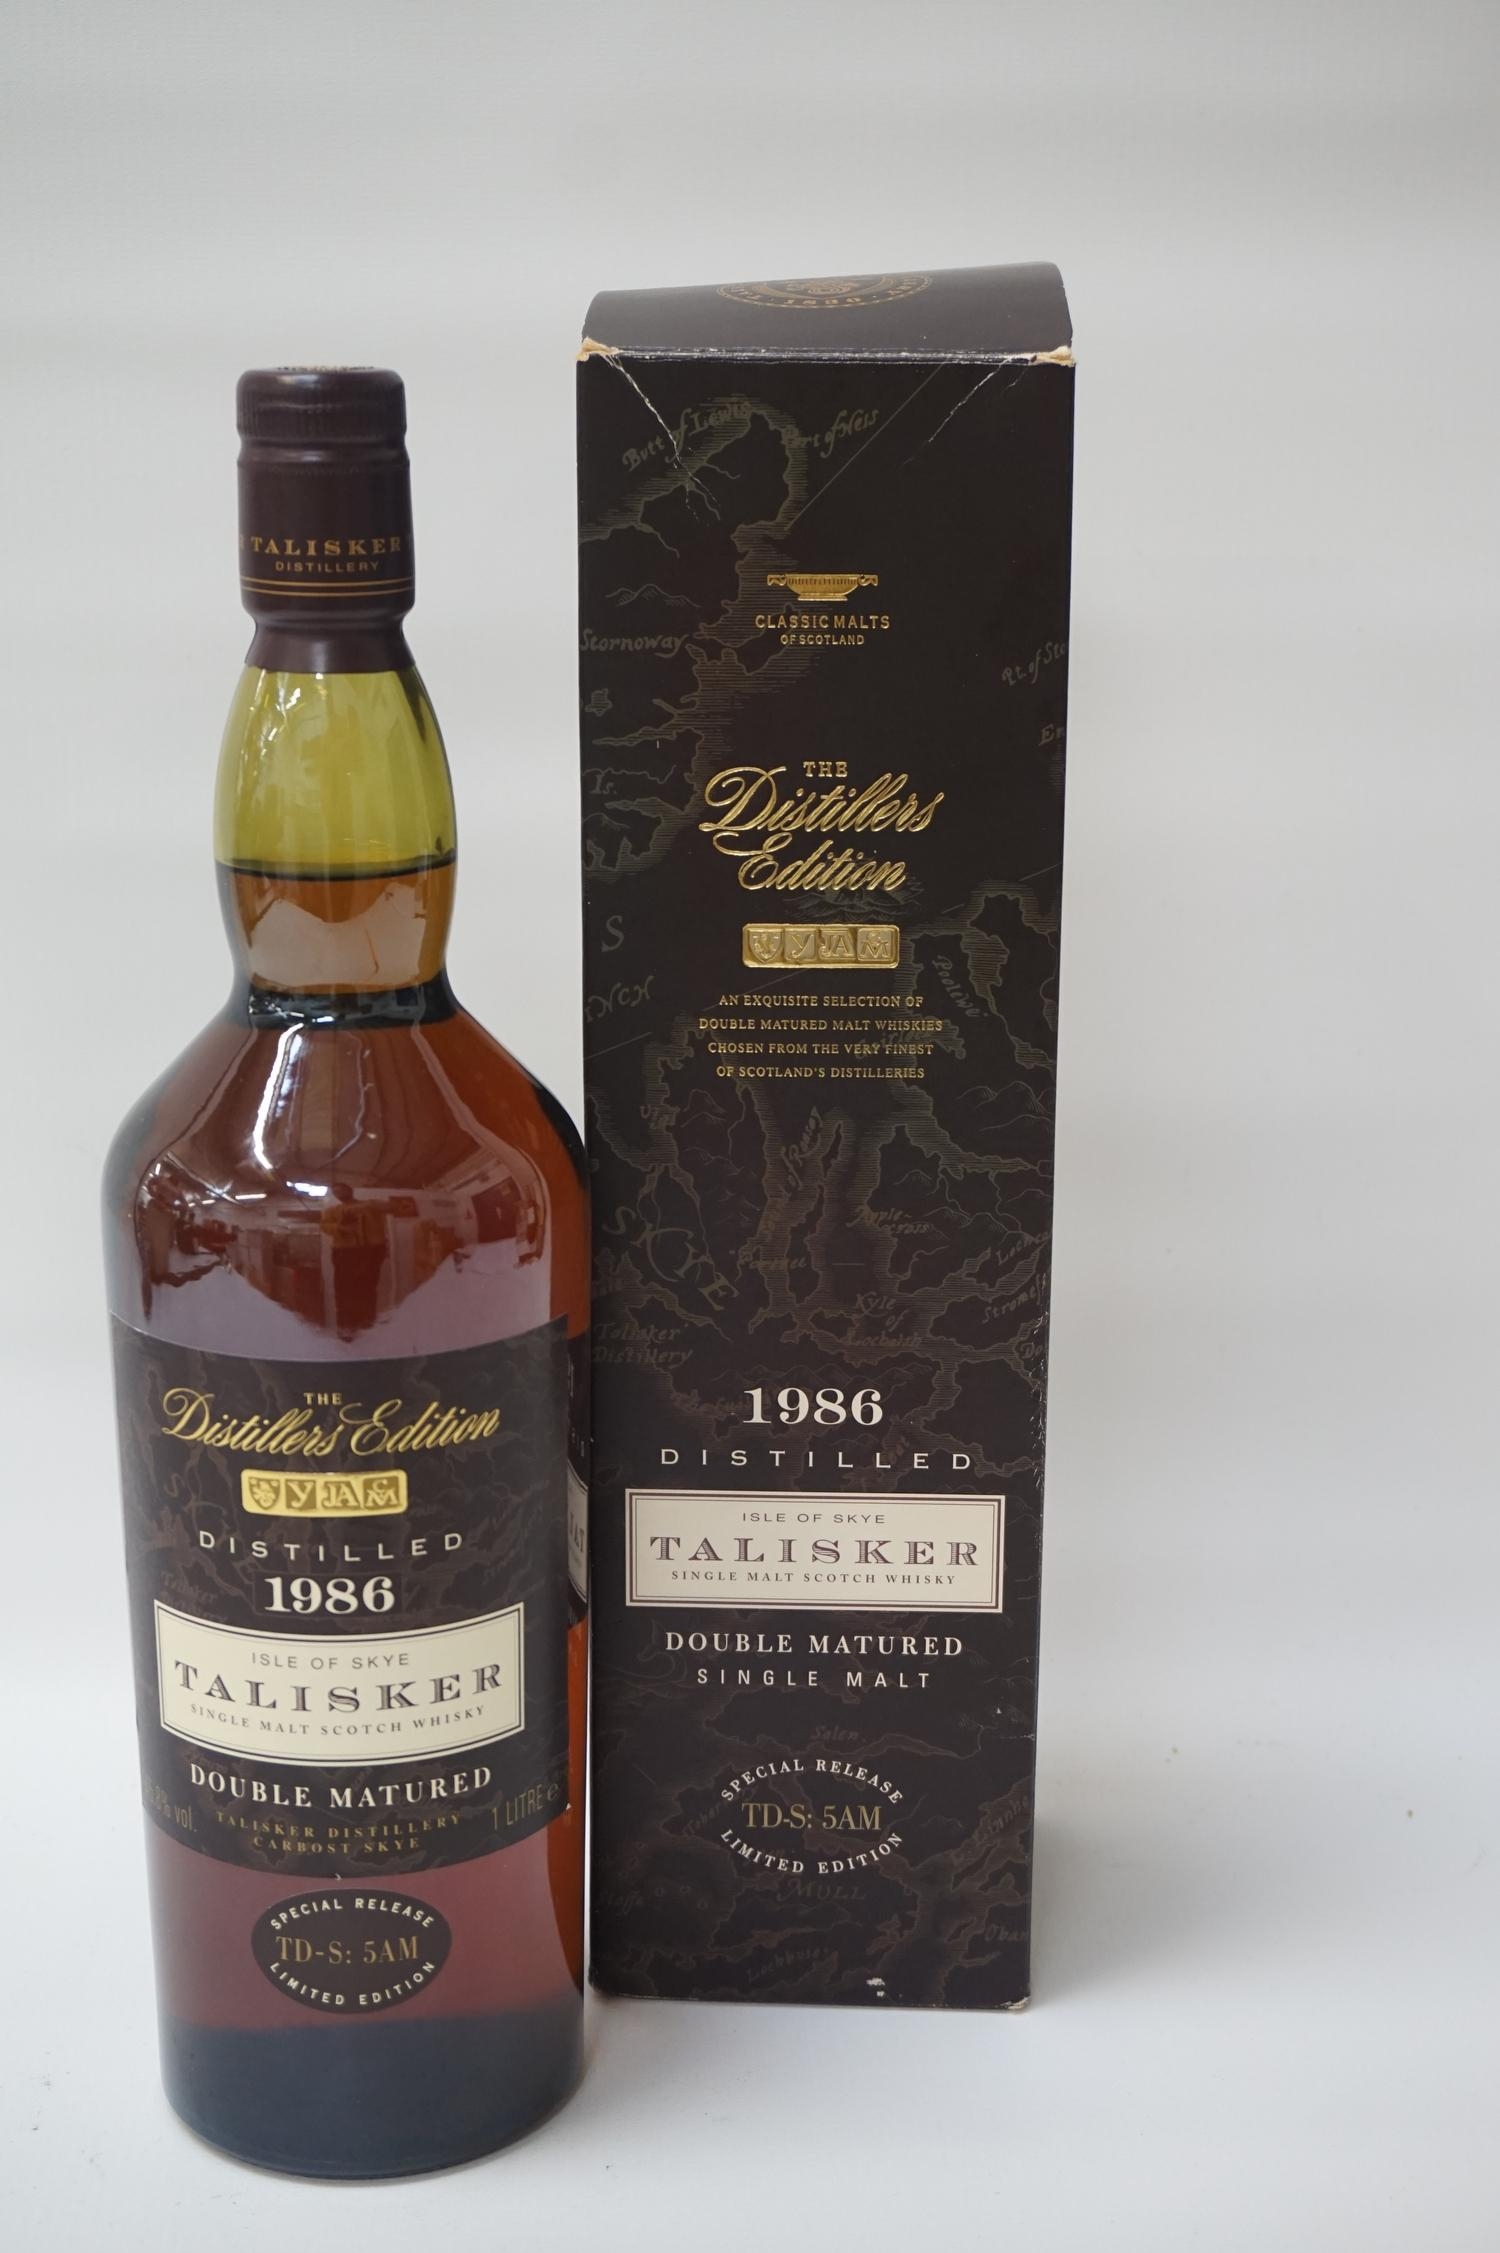 TALISKER DISTILLERS EDITION 1986 This bottle highlights how finishing a whisky in particular casks